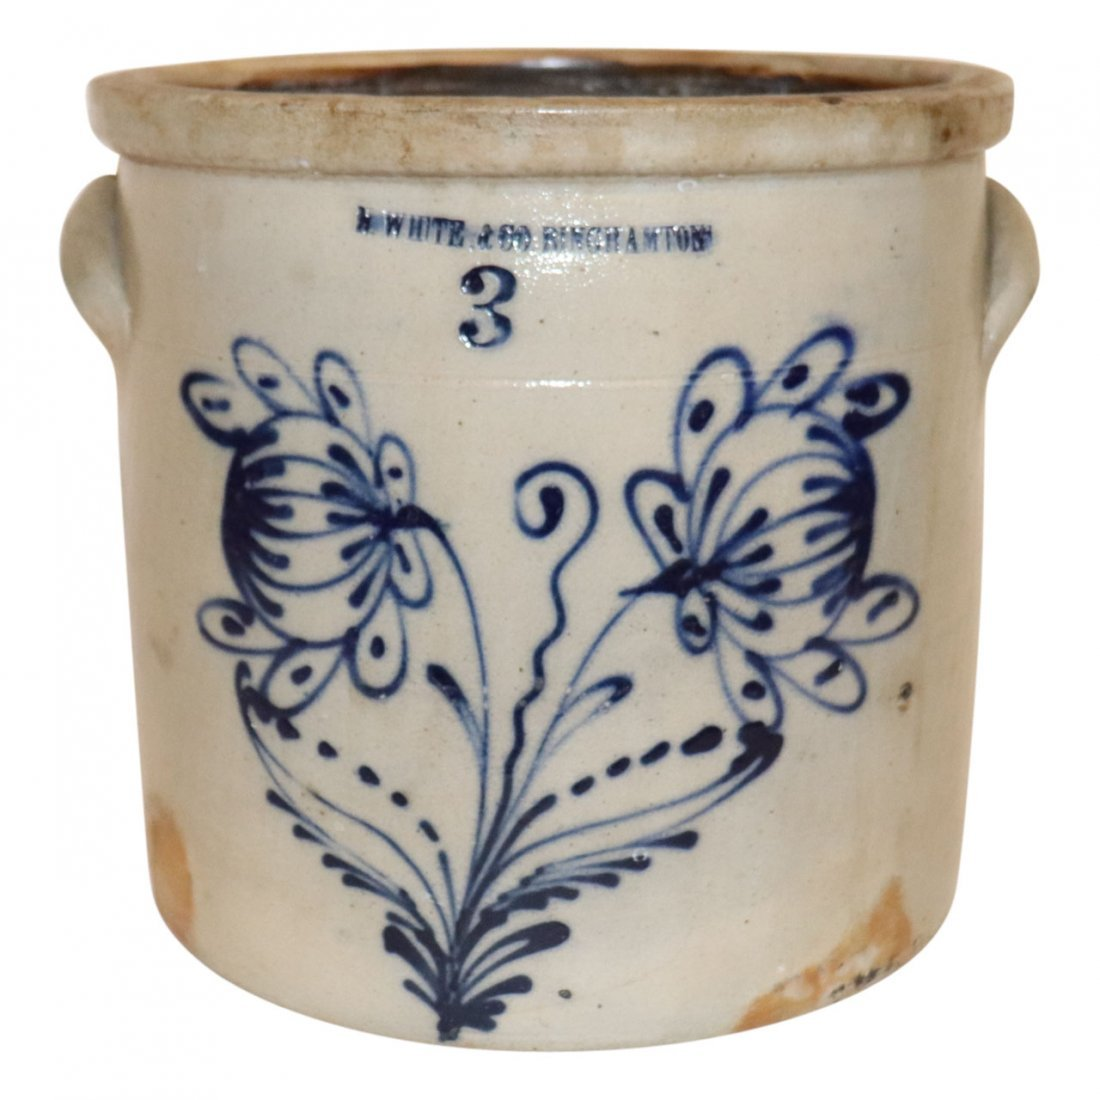 Stoneware Crock Blue Flowers N White and Co. NY